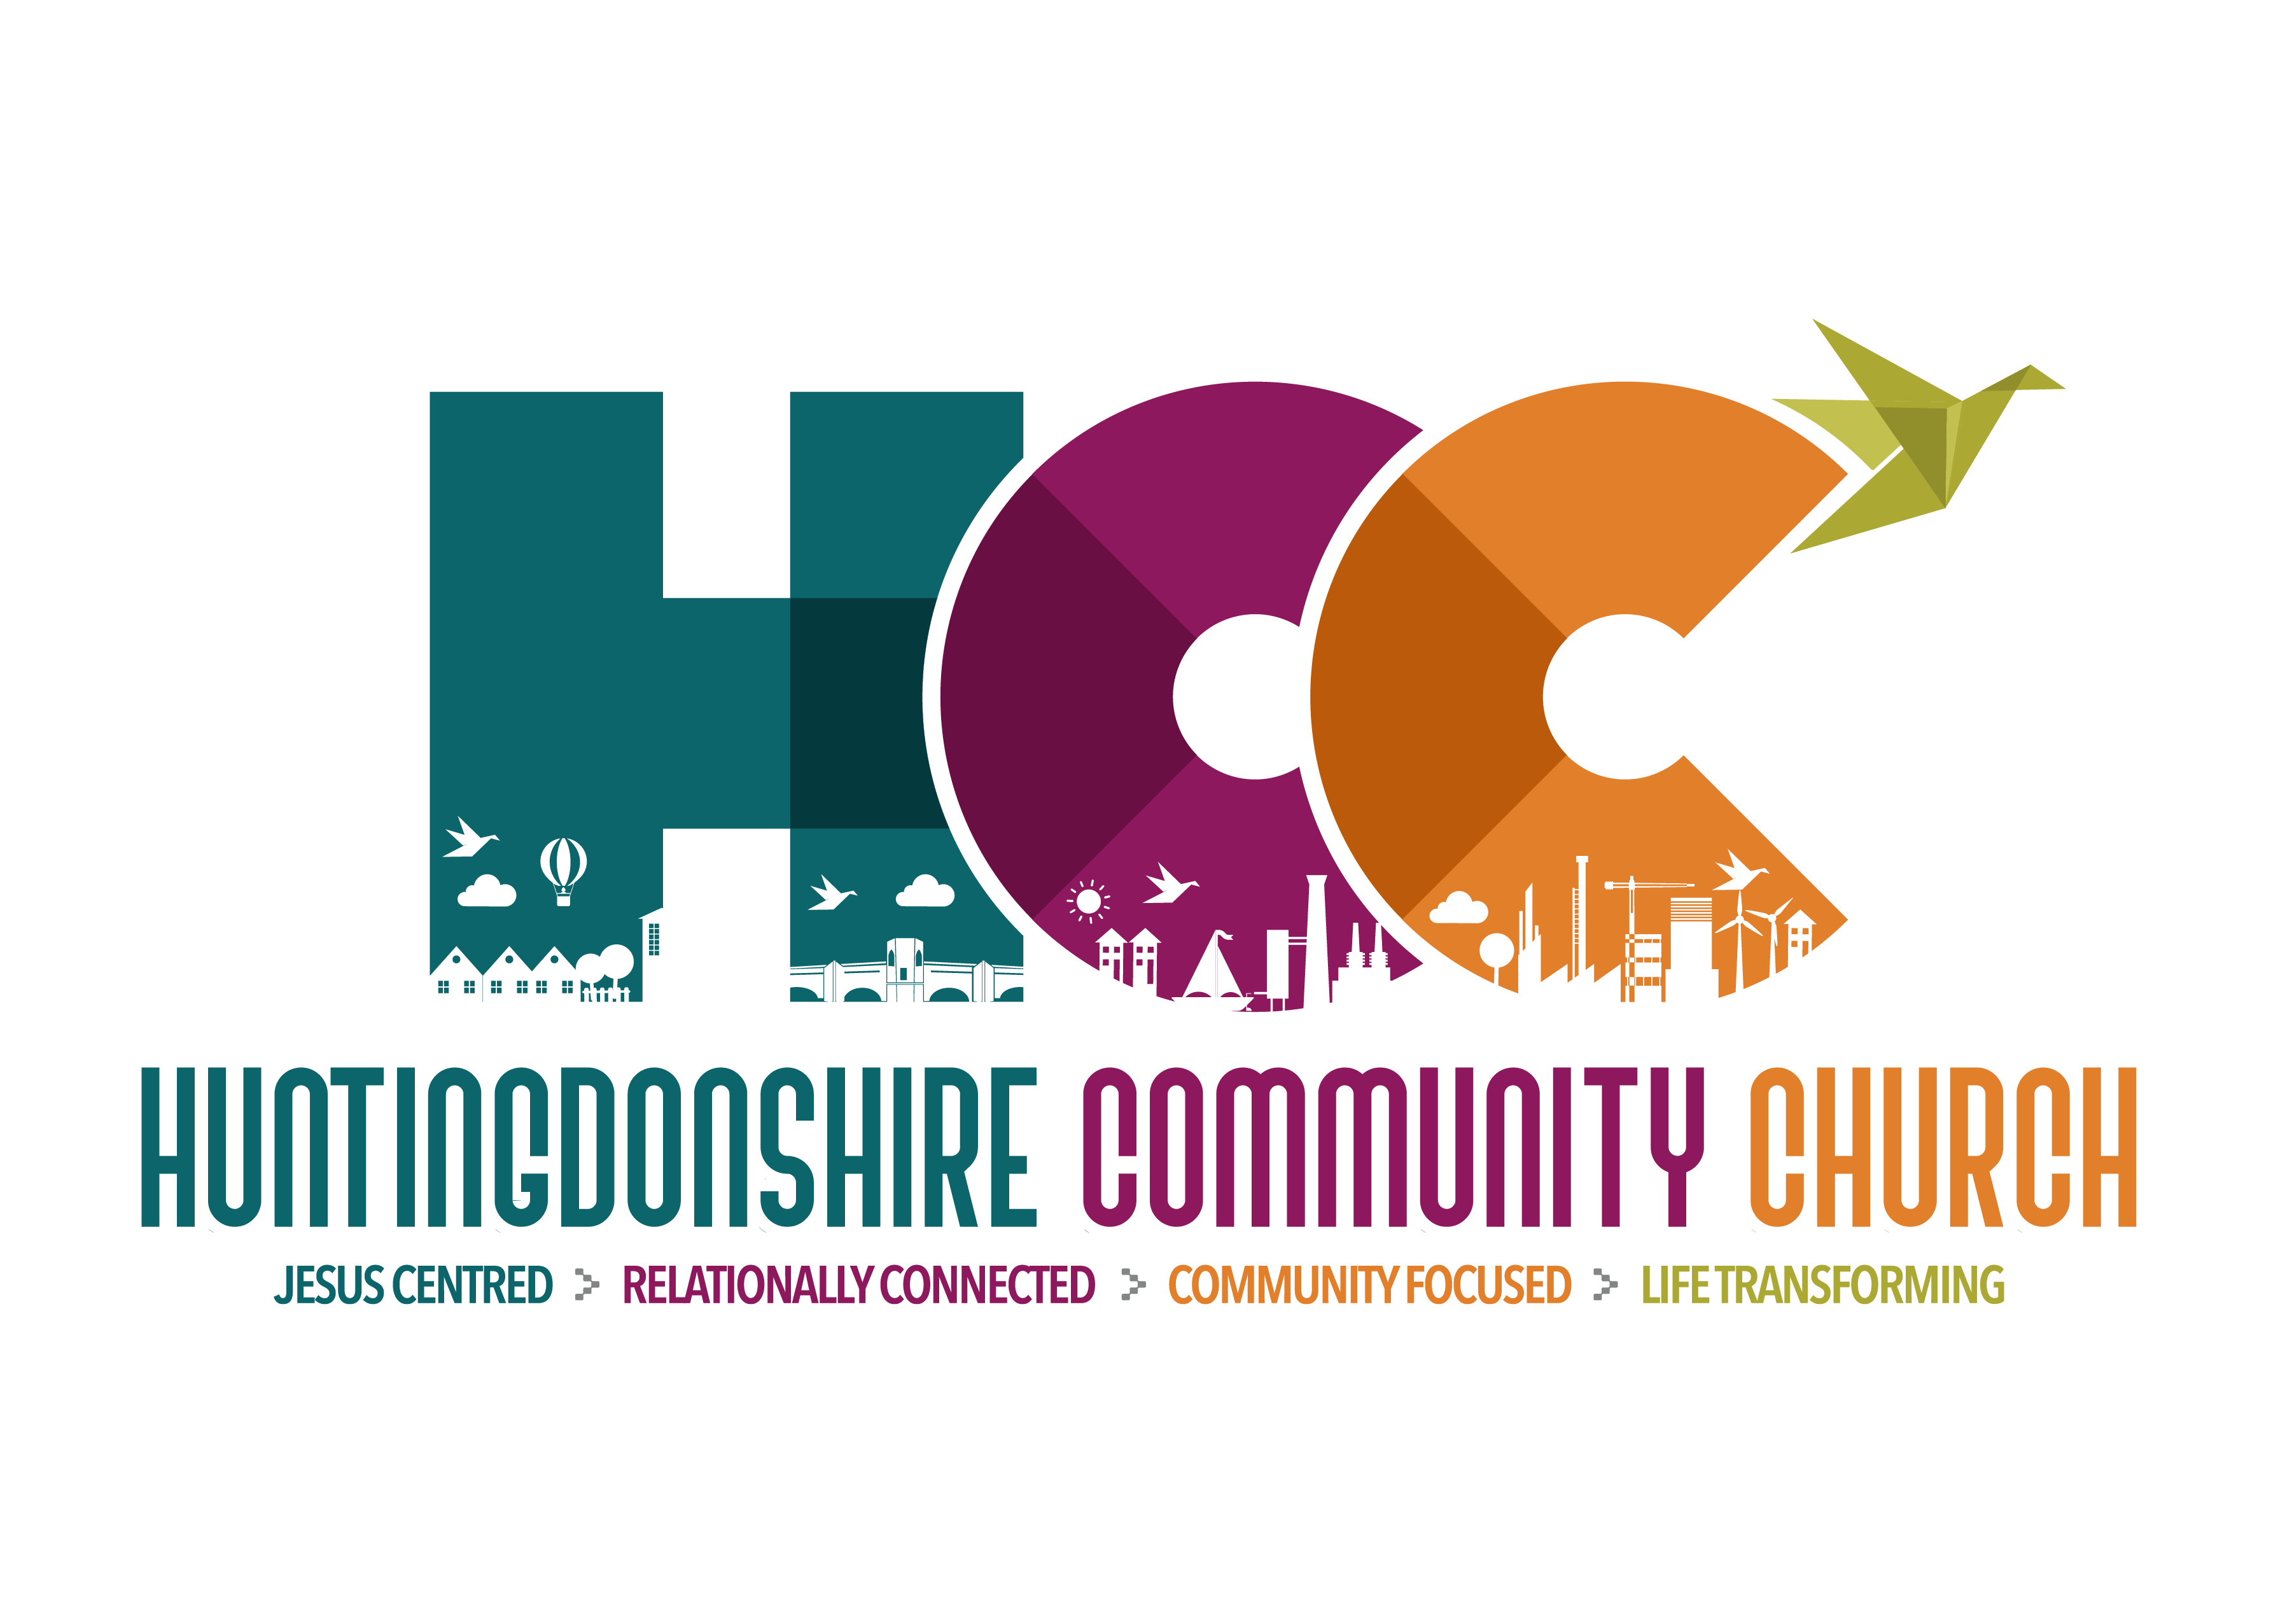 Huntingdonshire Community Church